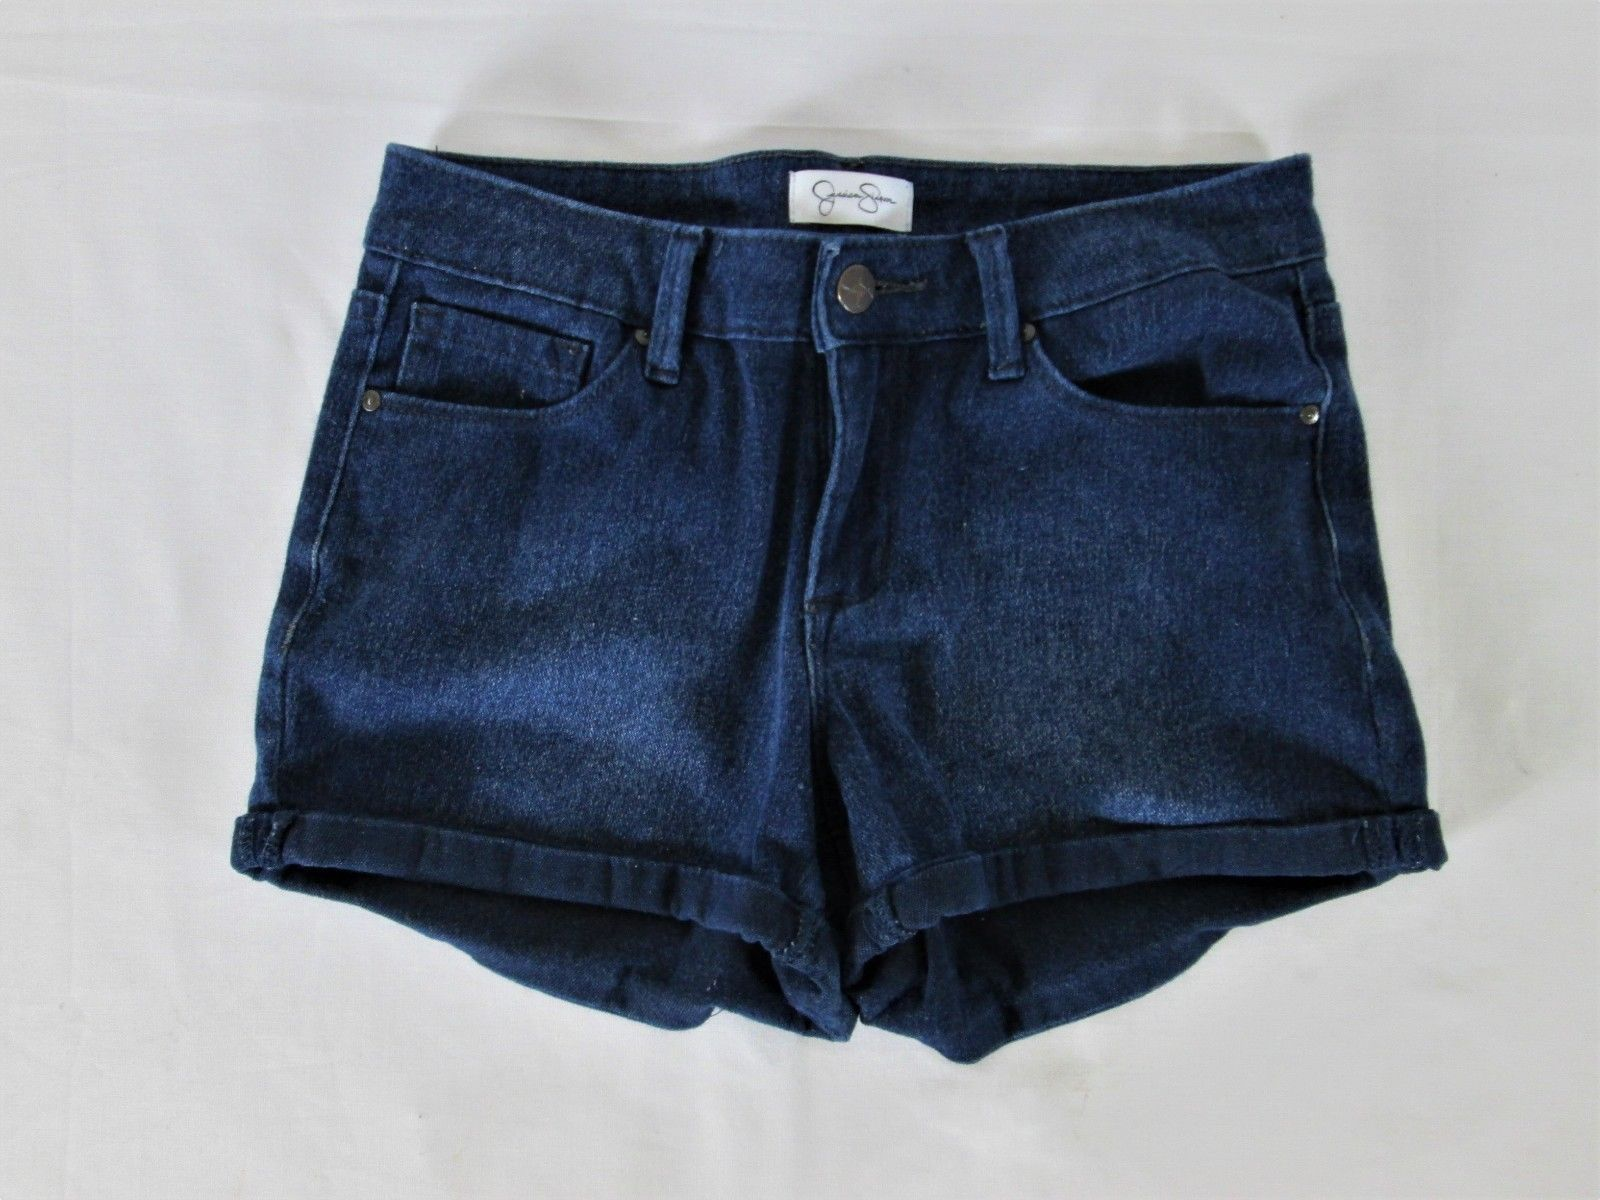 JESSICA SIMPSON WOMENS  26 waist  BLUE DENIM DARK WASH STRETCH SHORT SHORTS (J)